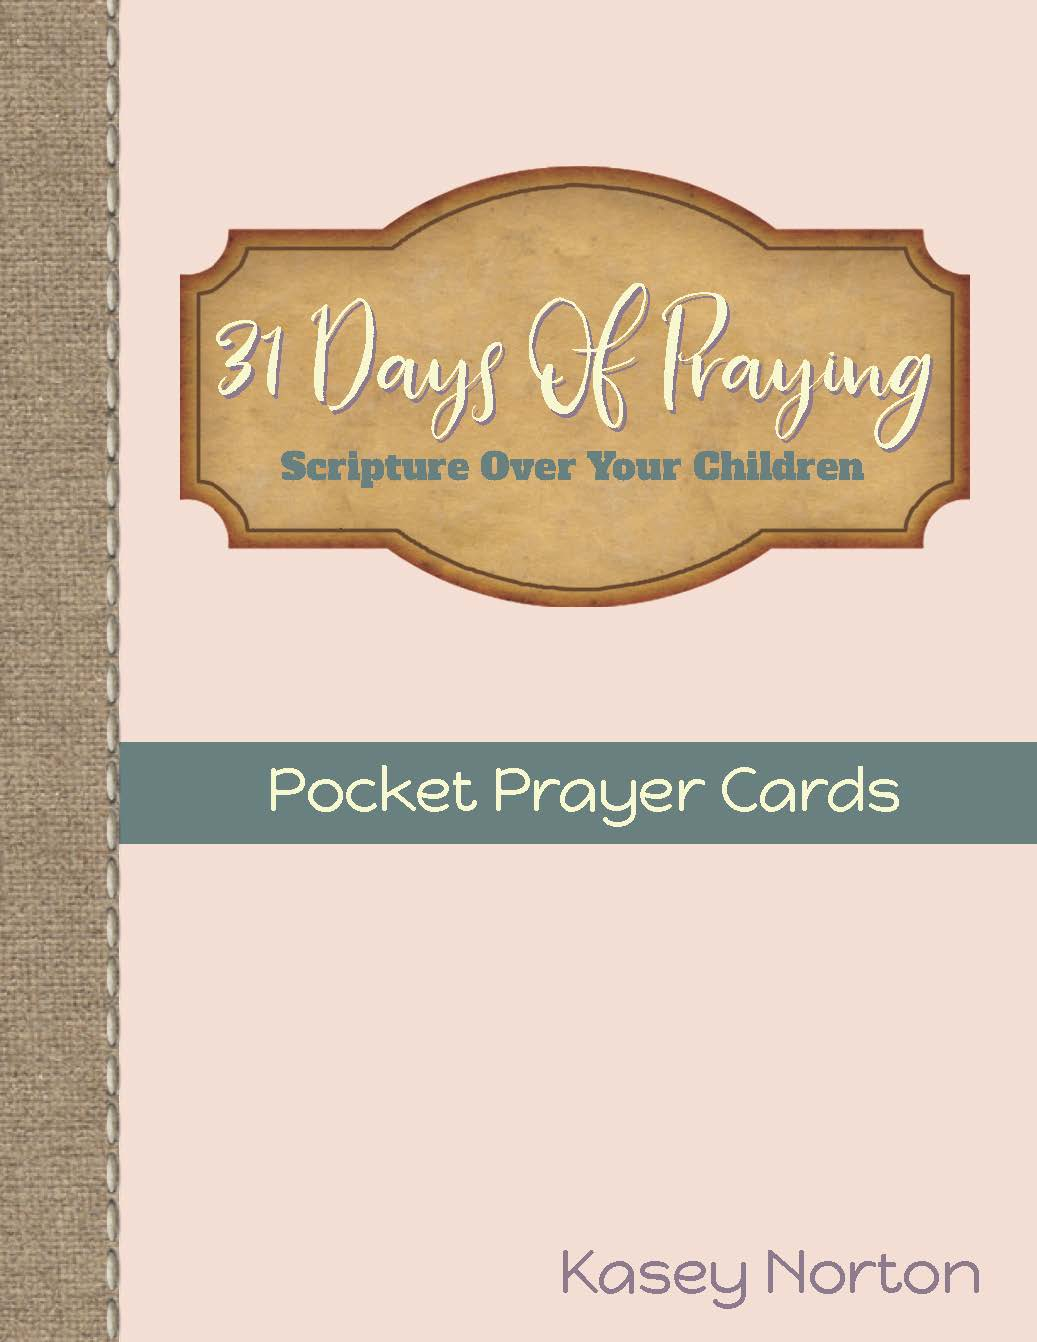 31 Days of Praying Pocket Prayer Cards - Walking Redeemed